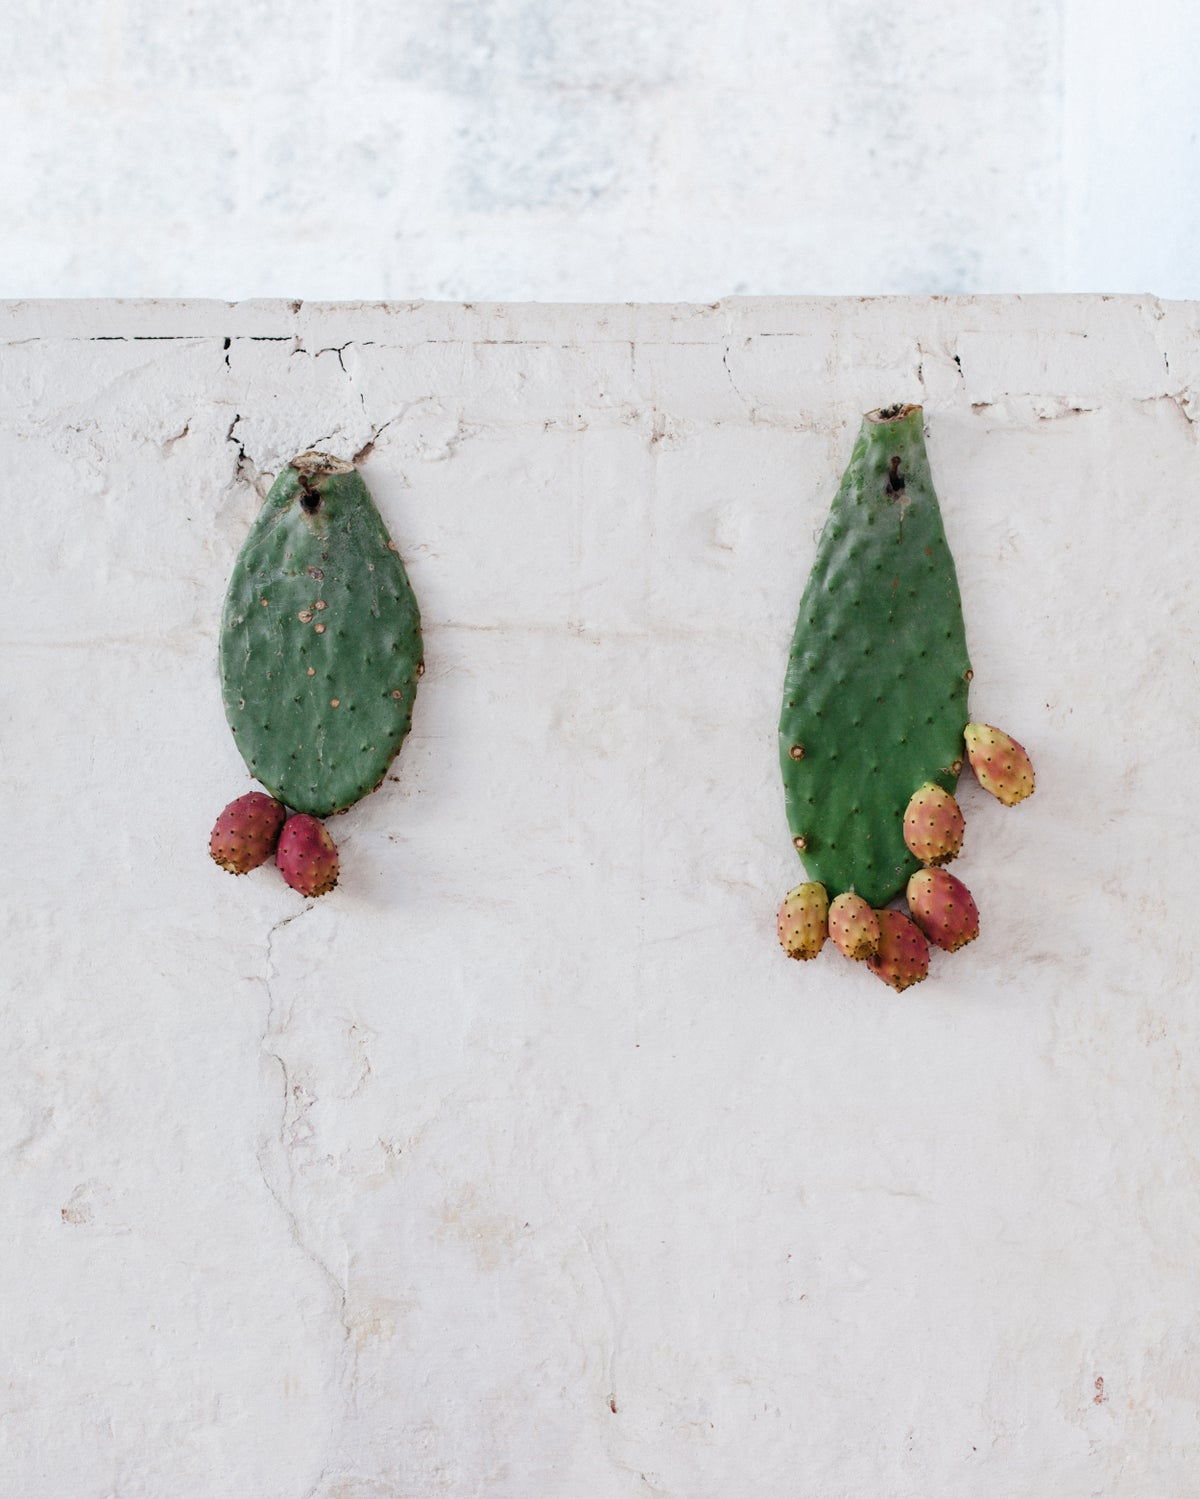 Image of Prickly pears in Puglia